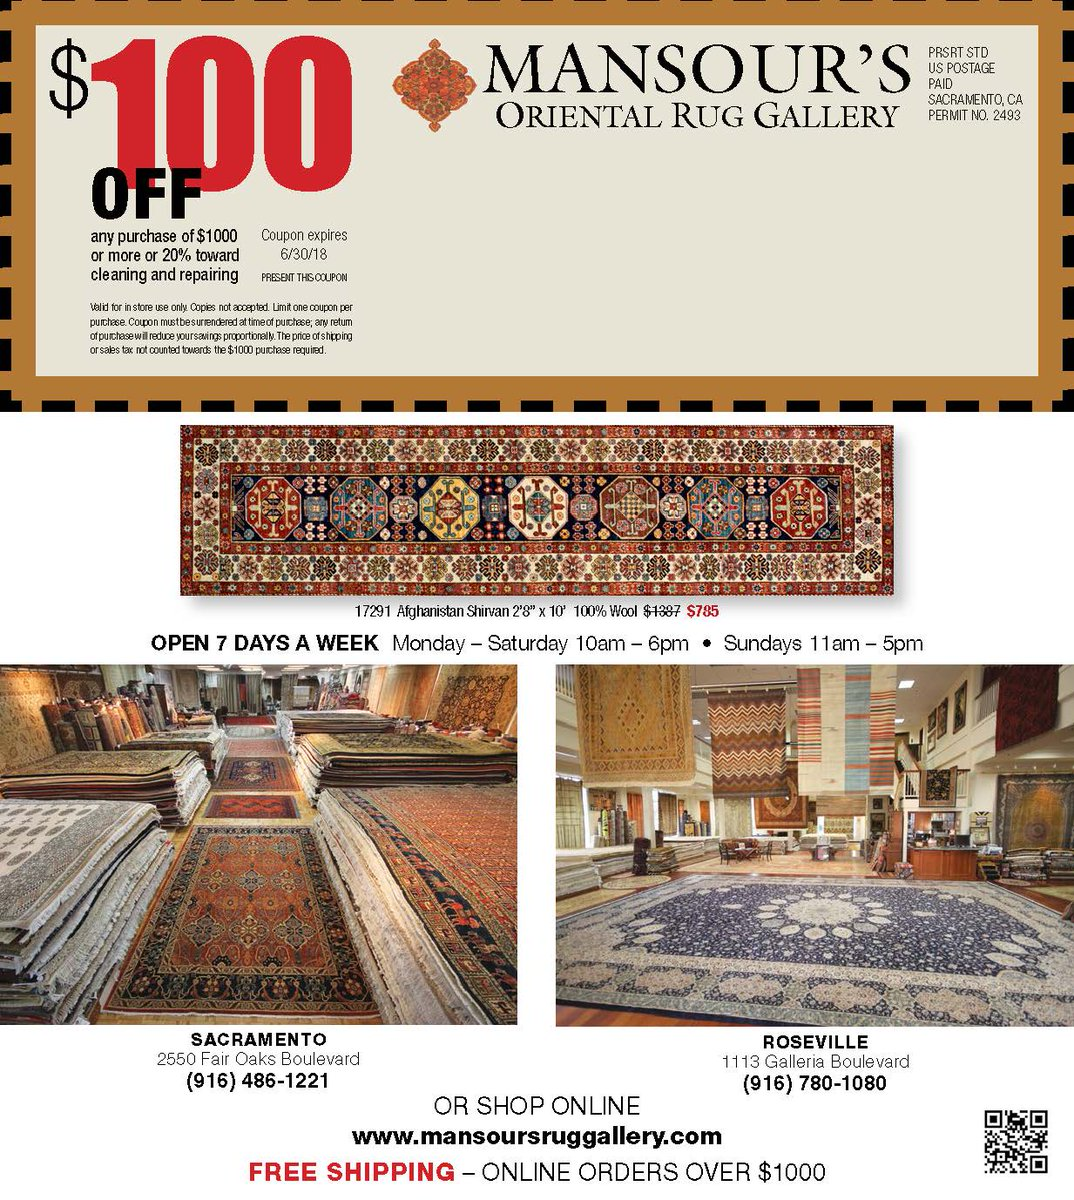 Mansour S O R G On Twitter Annual Rug Free Shipping Online Orders Over 1000 And 100 Off Coupon We Are Open All Weekend For Memorial Day